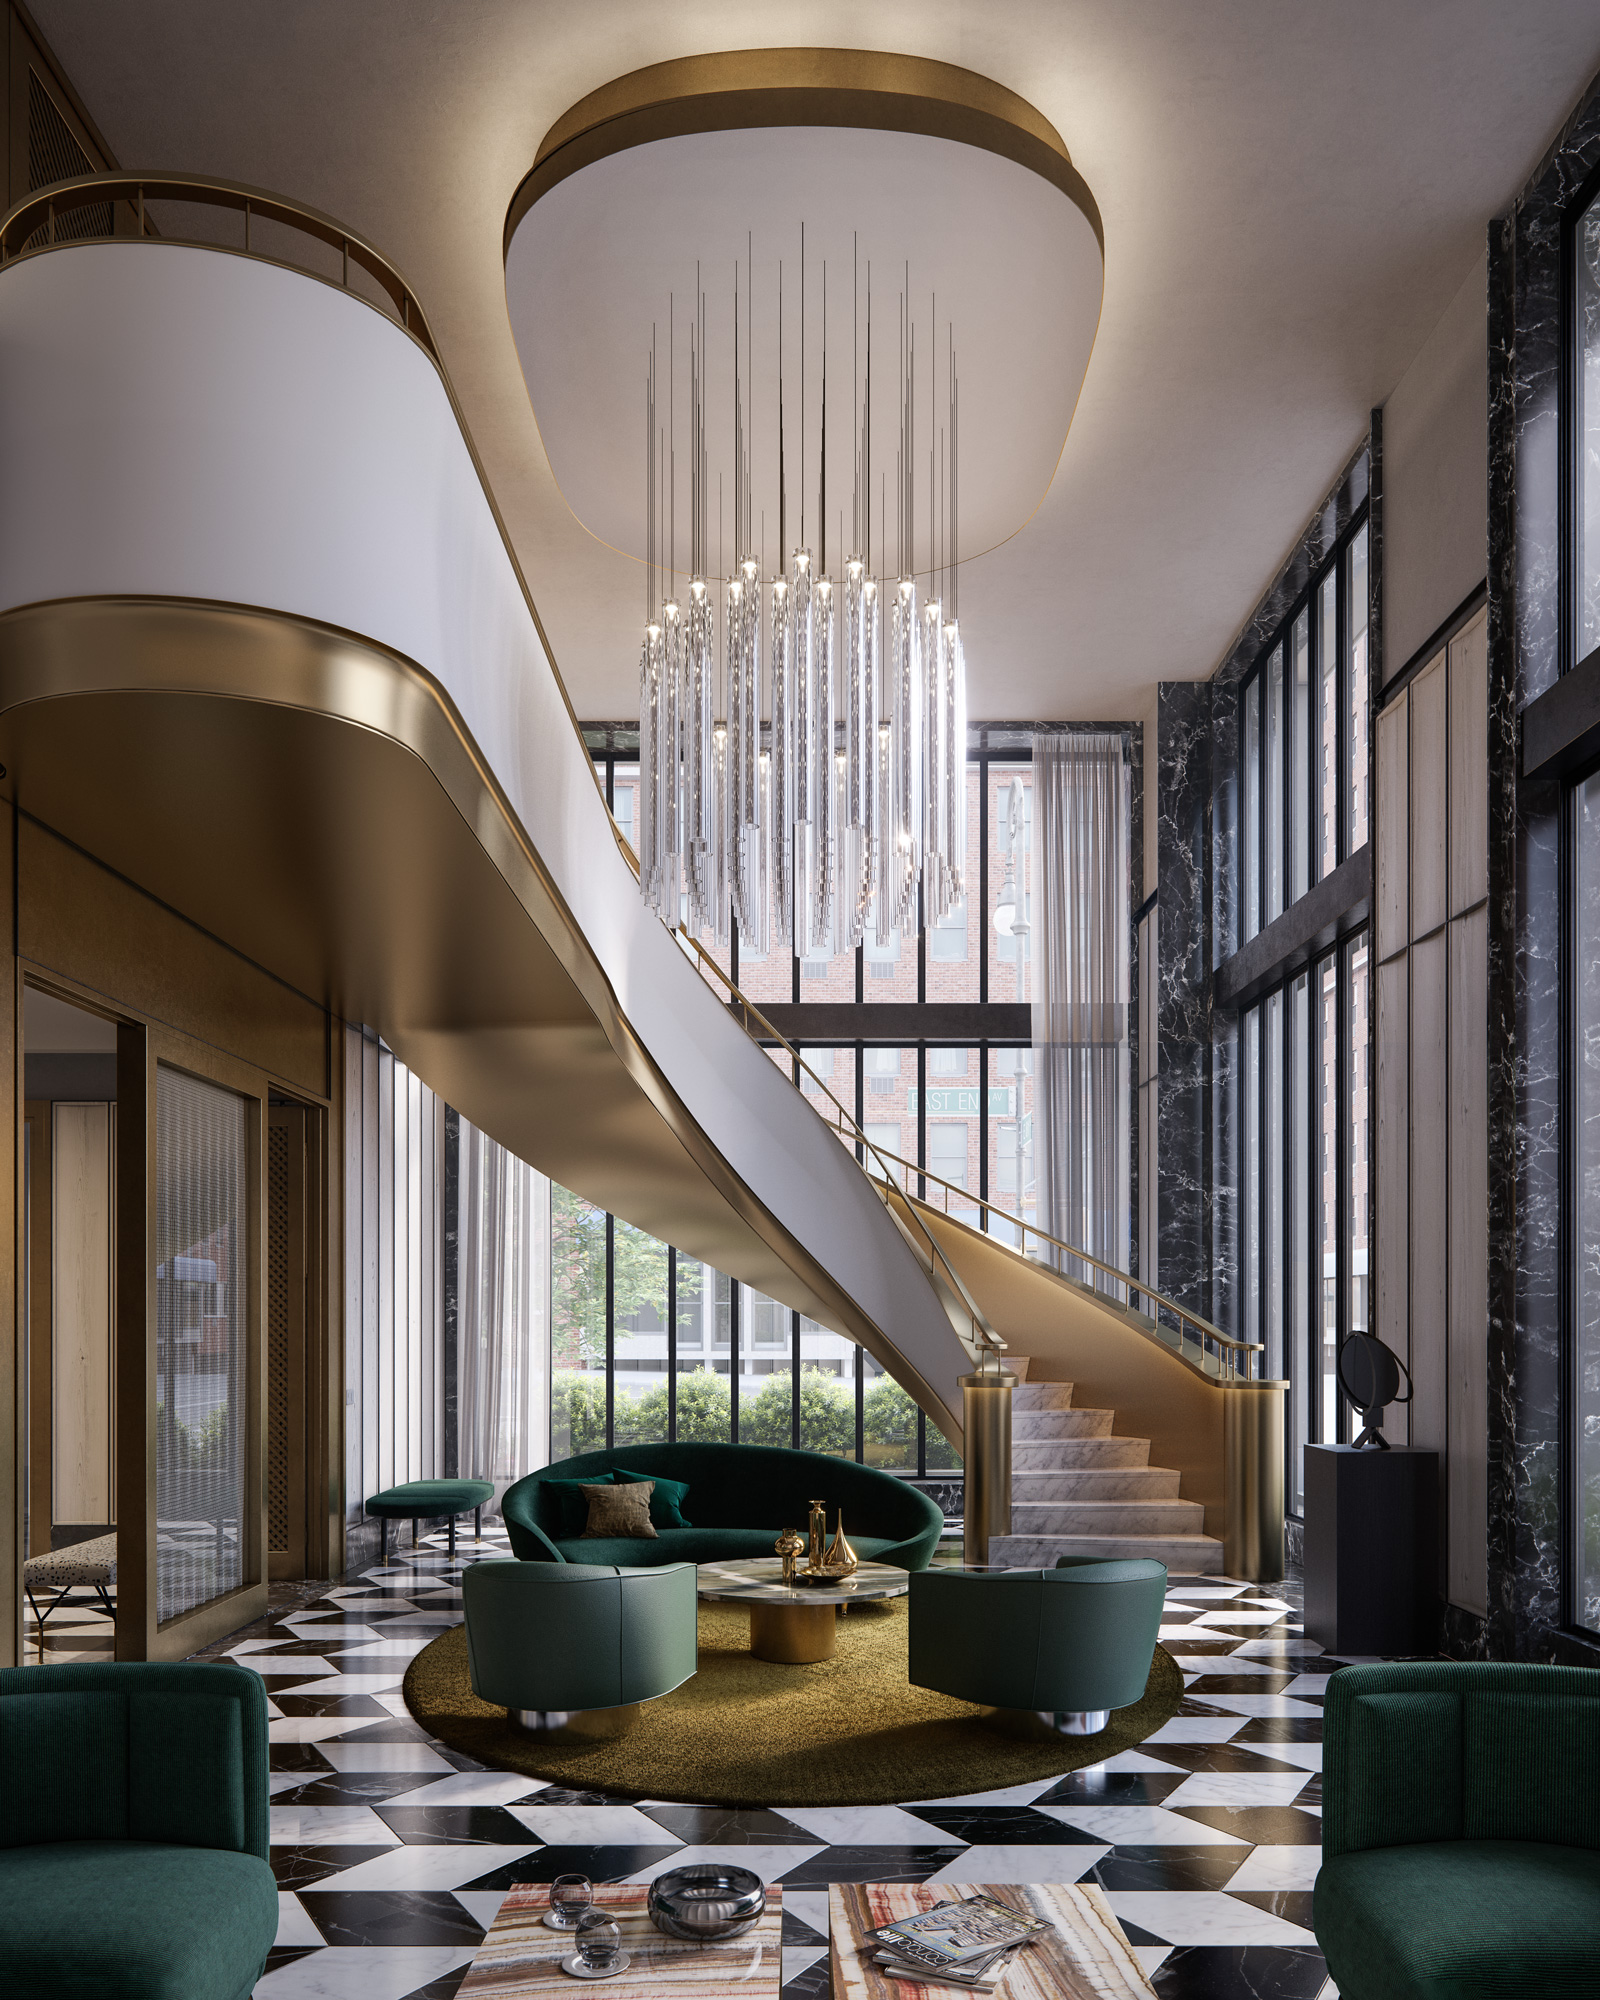 Interior view of 40 East End Ave residence south longue in NYC. Has green chairs, grand staircase and chandelier centerpiece.